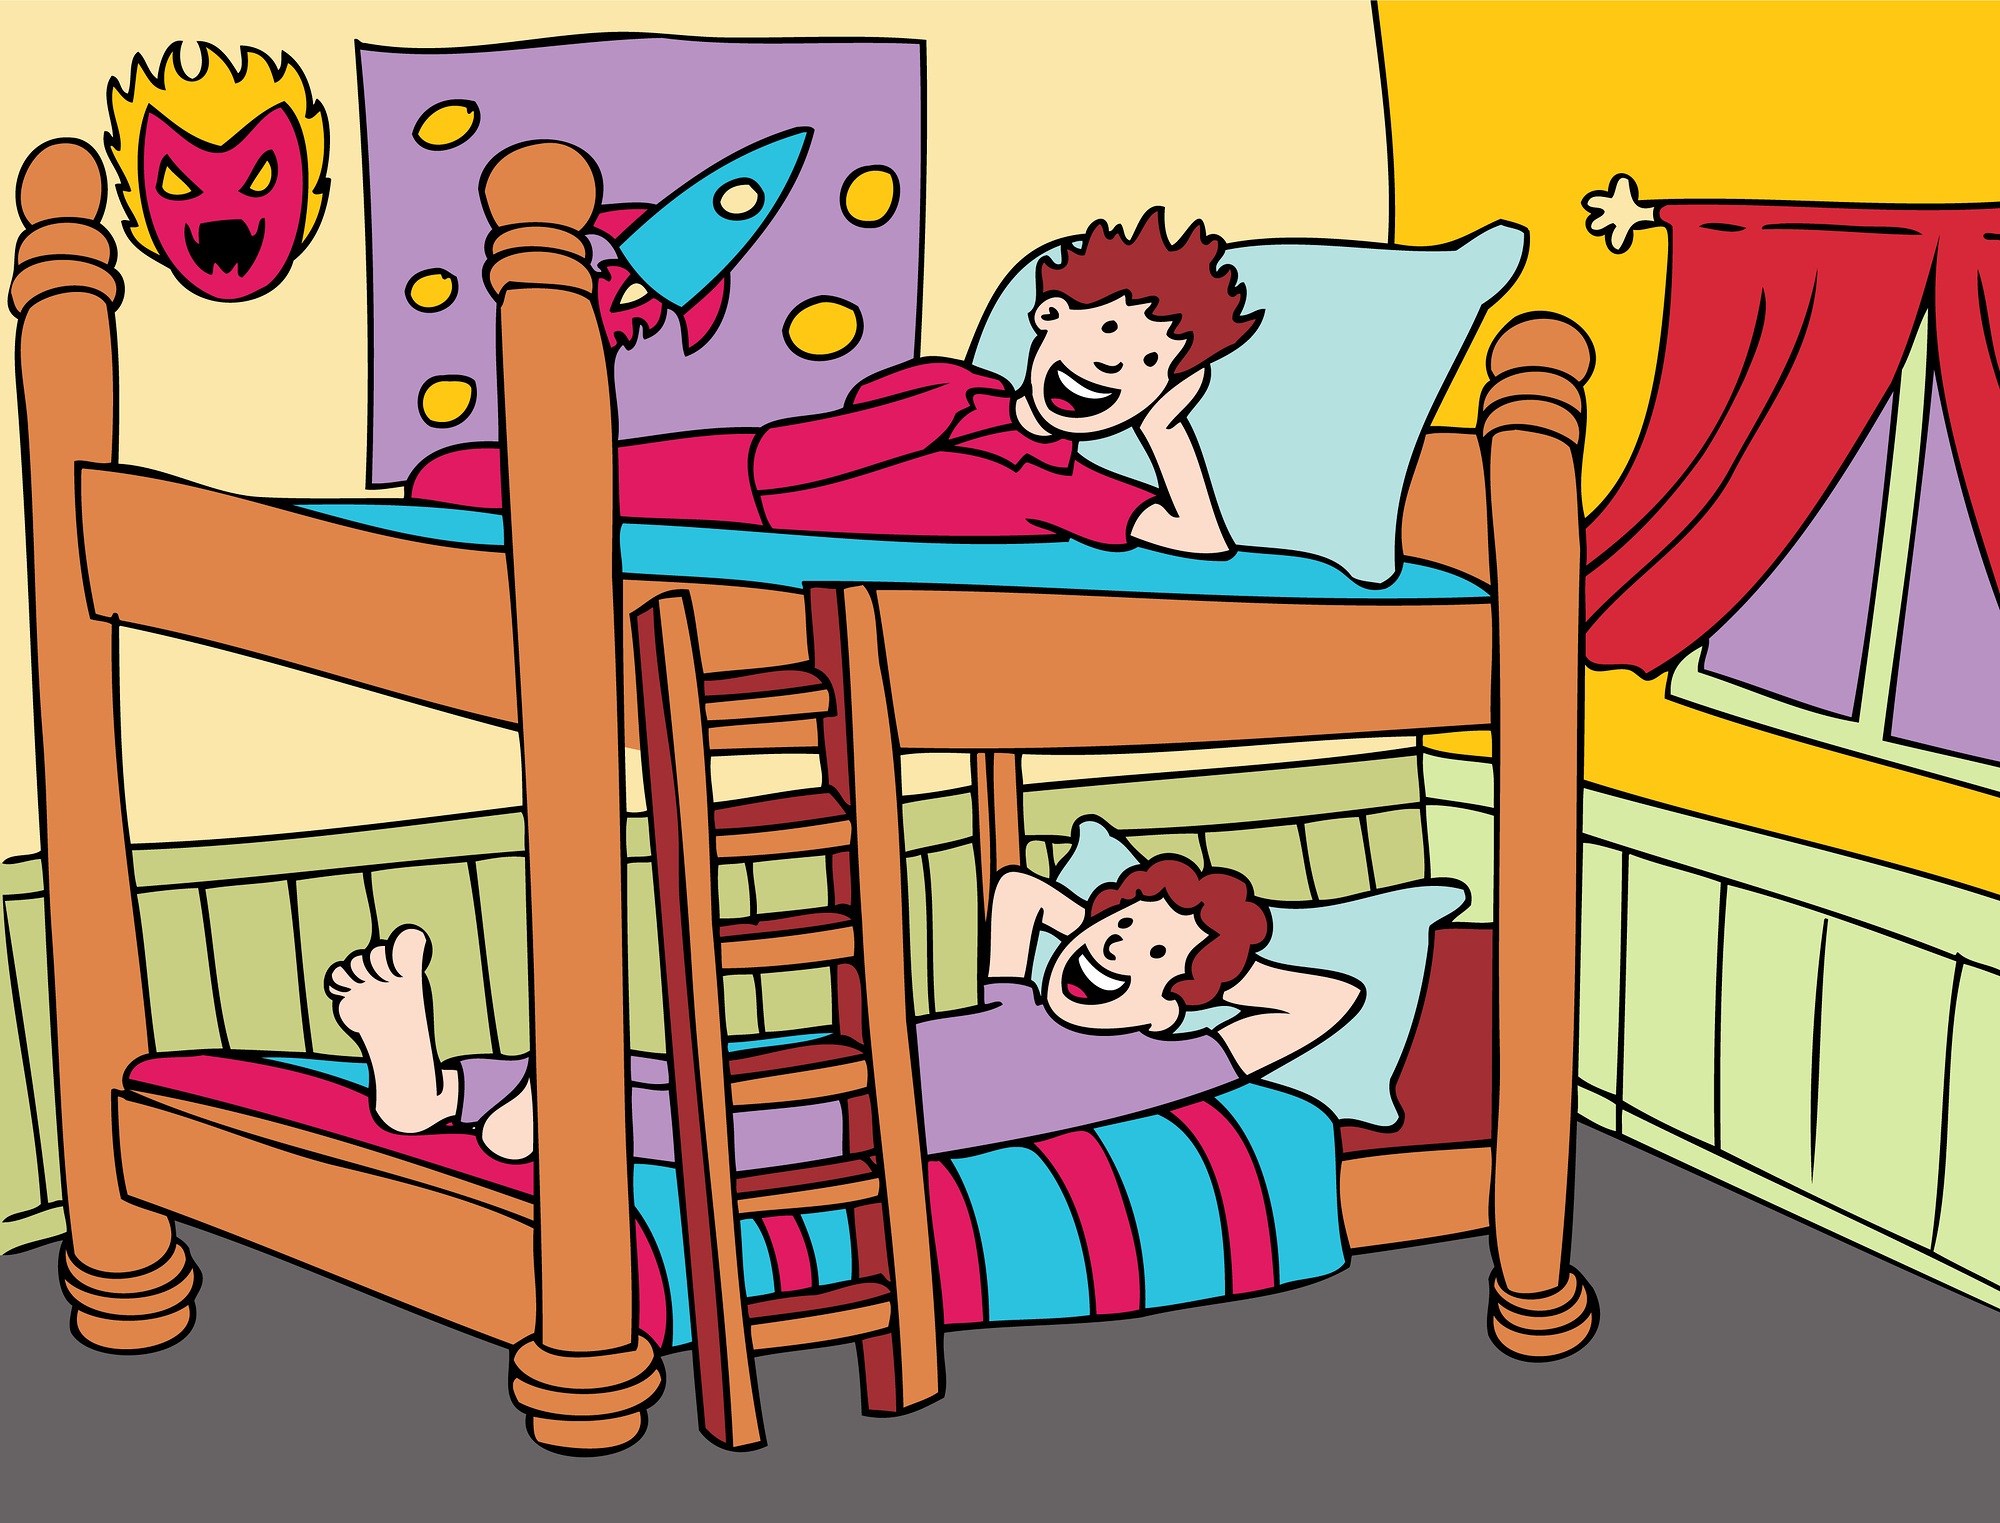 Safety tips moms house. Bedroom clipart bunk bed